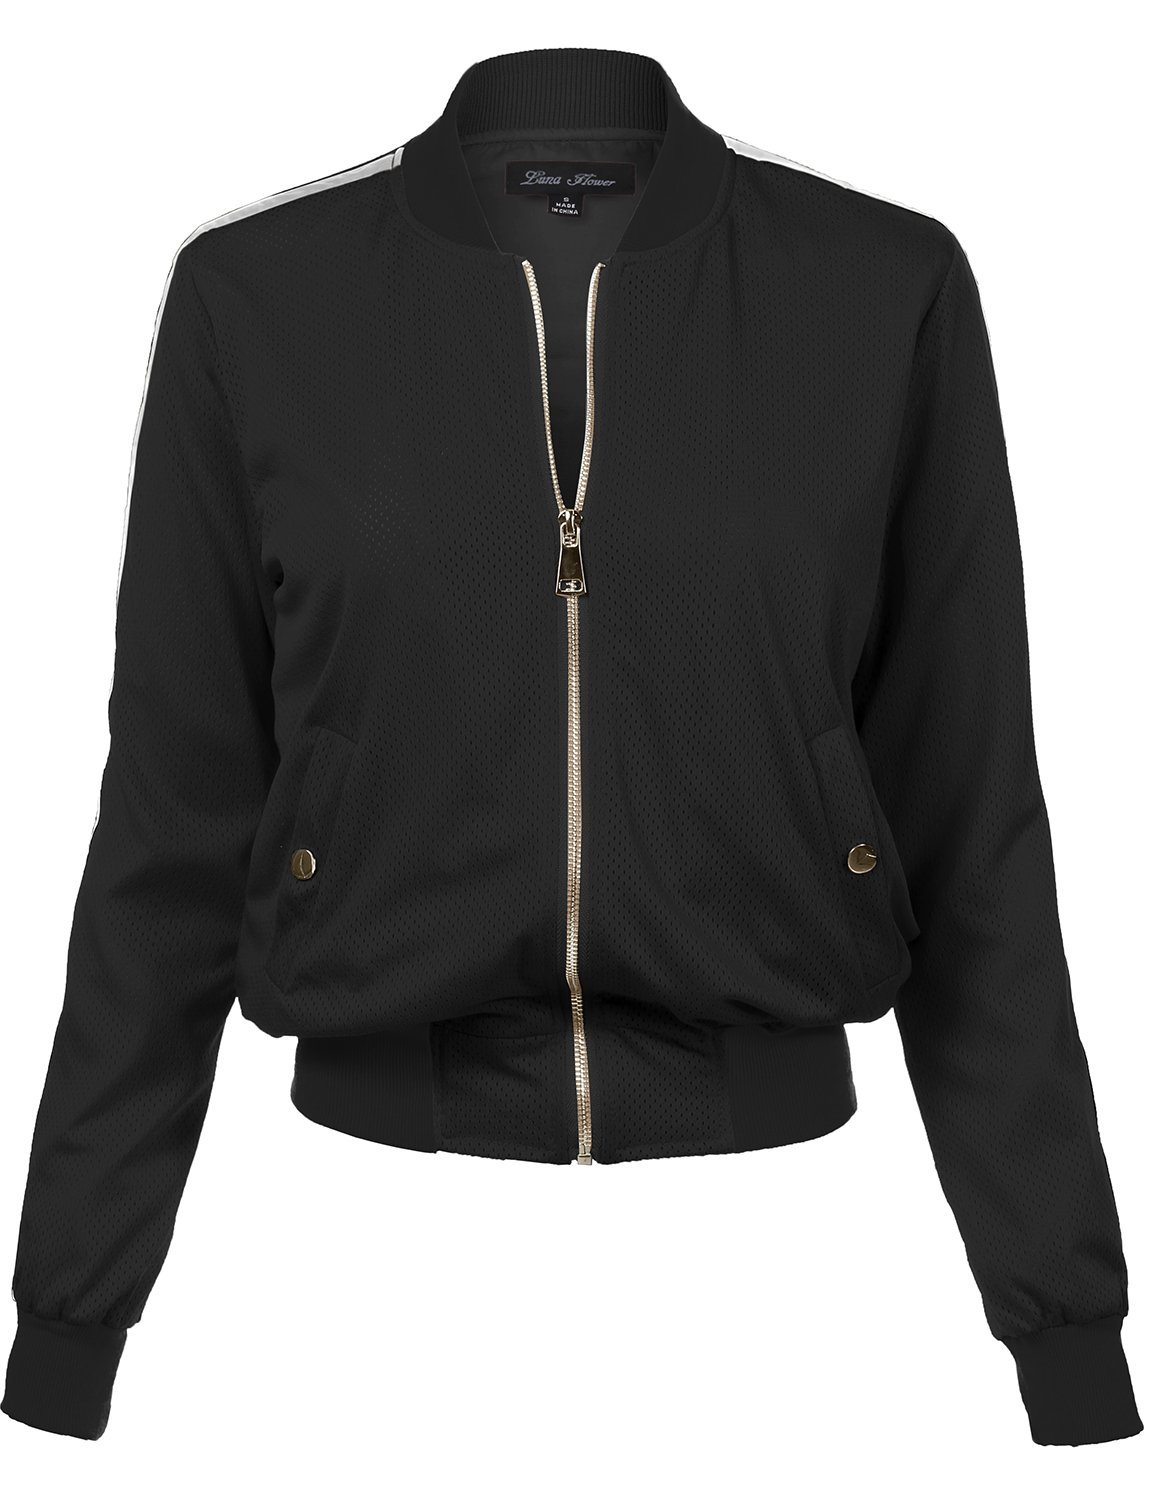 Waist Length Relaxed Fitted Style Zipper Closure Bomber Jacket, 109-Black, Small